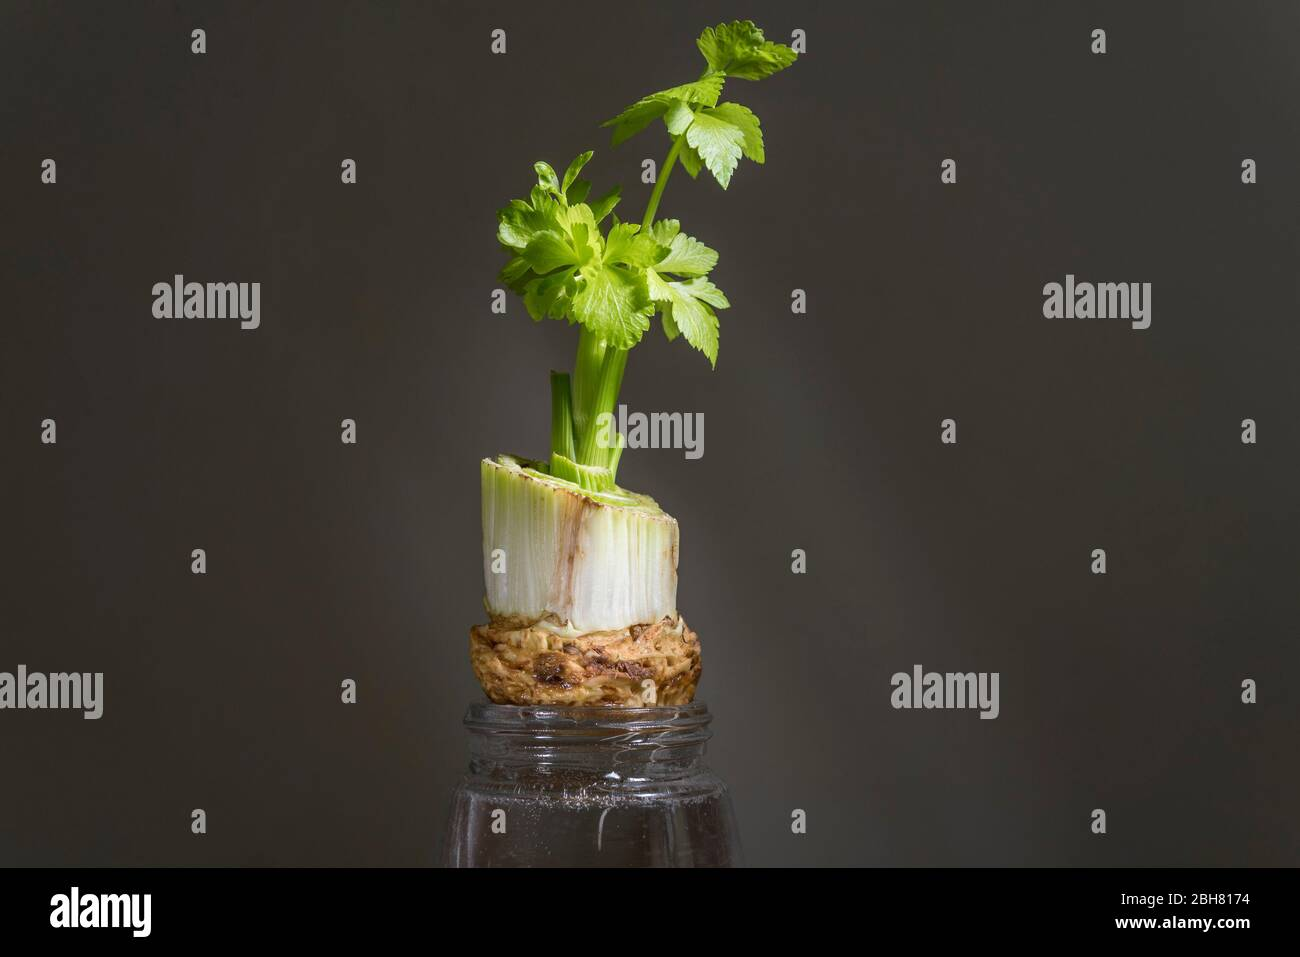 London, UK.  24 April 2020.  Celery stalks (Apium graveolens) grow from a discarded end suspended in water.  During the coronavirus pandemic lockdown, the public is reported to be at home connecting more with nature, noticing more garden wildlife and enjoying more cooking from scratch.  Credit: Stephen Chung / Alamy Live News Stock Photo